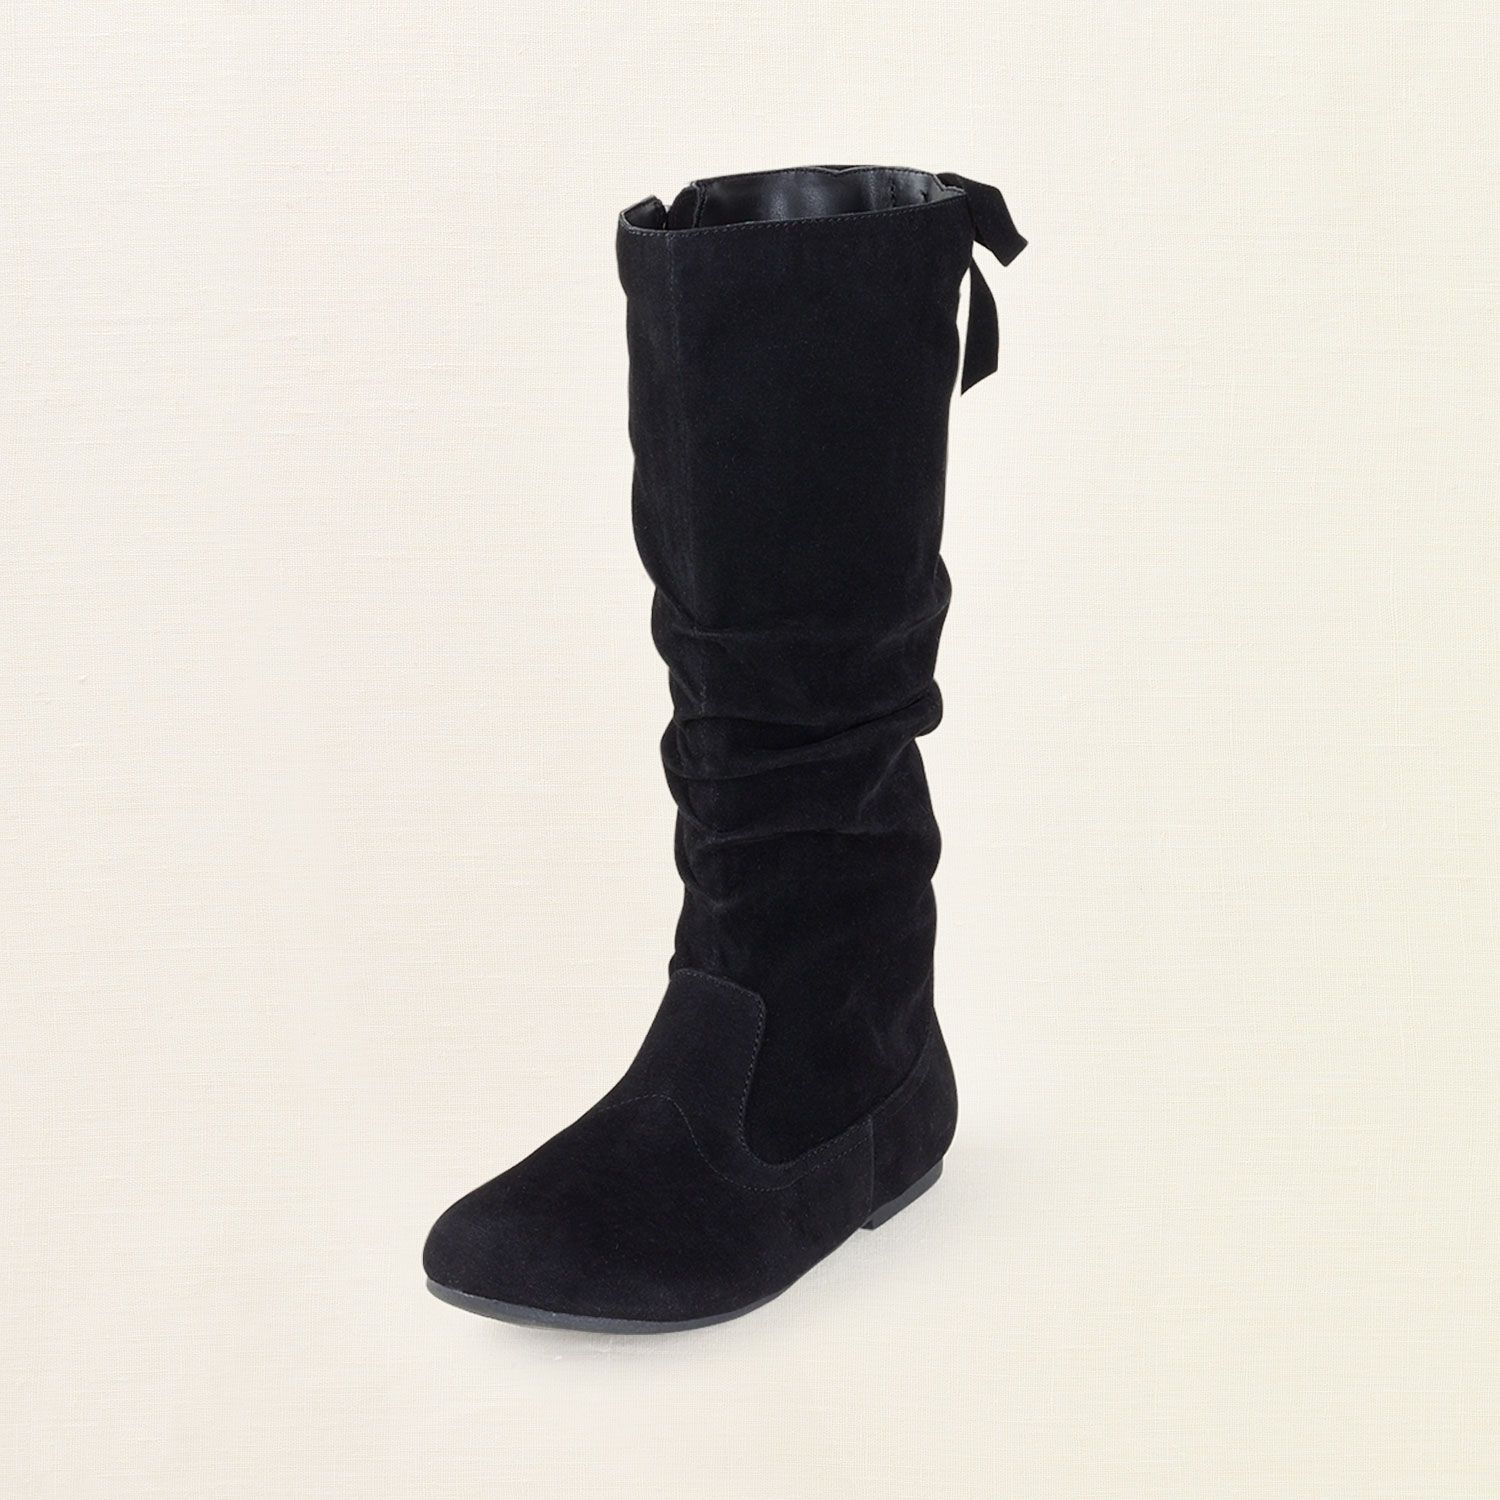 Cute+Knee+High+Boots+for+Teens | ... girl, young and old should ...